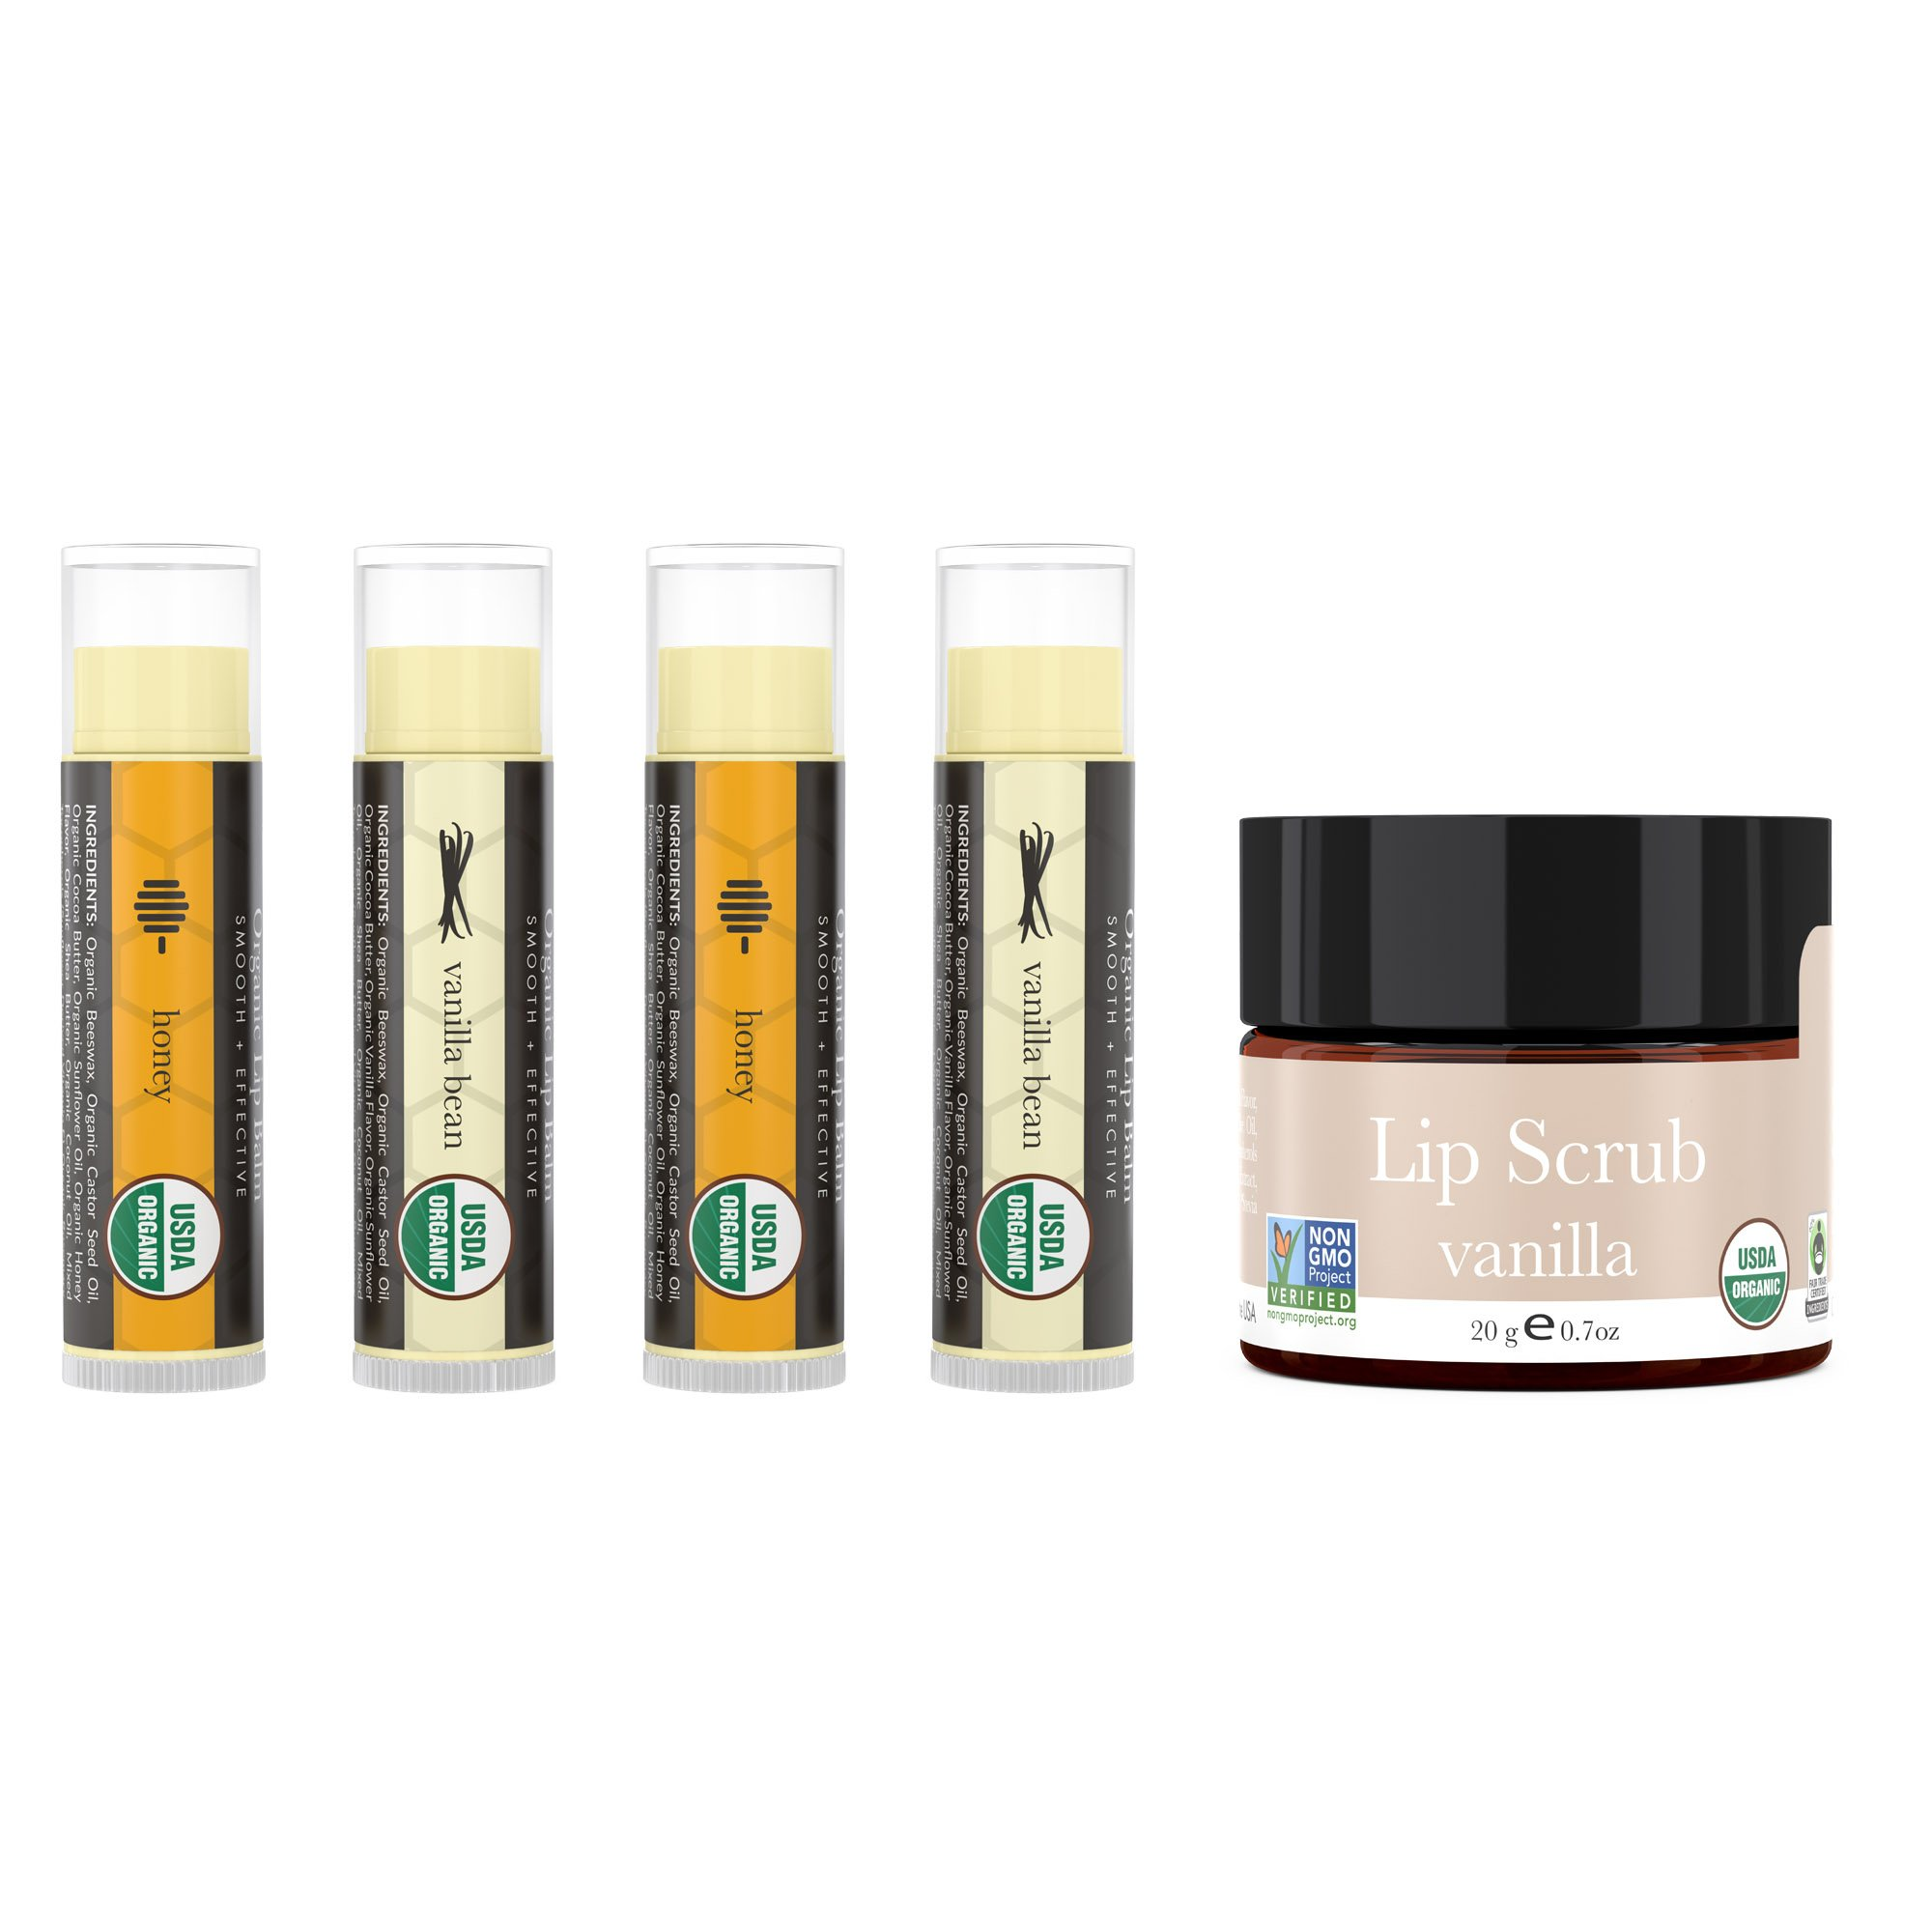 Lip Balm and Scrub Bundle - 4 Pack of Honey & Vanilla Moisturizer with Vanilla Exfoliating Sugar Scrub, Best Gift for Stocking Stuffer, Birthday or Present for Women and Girls, USDA Organic by Beauty by Earth